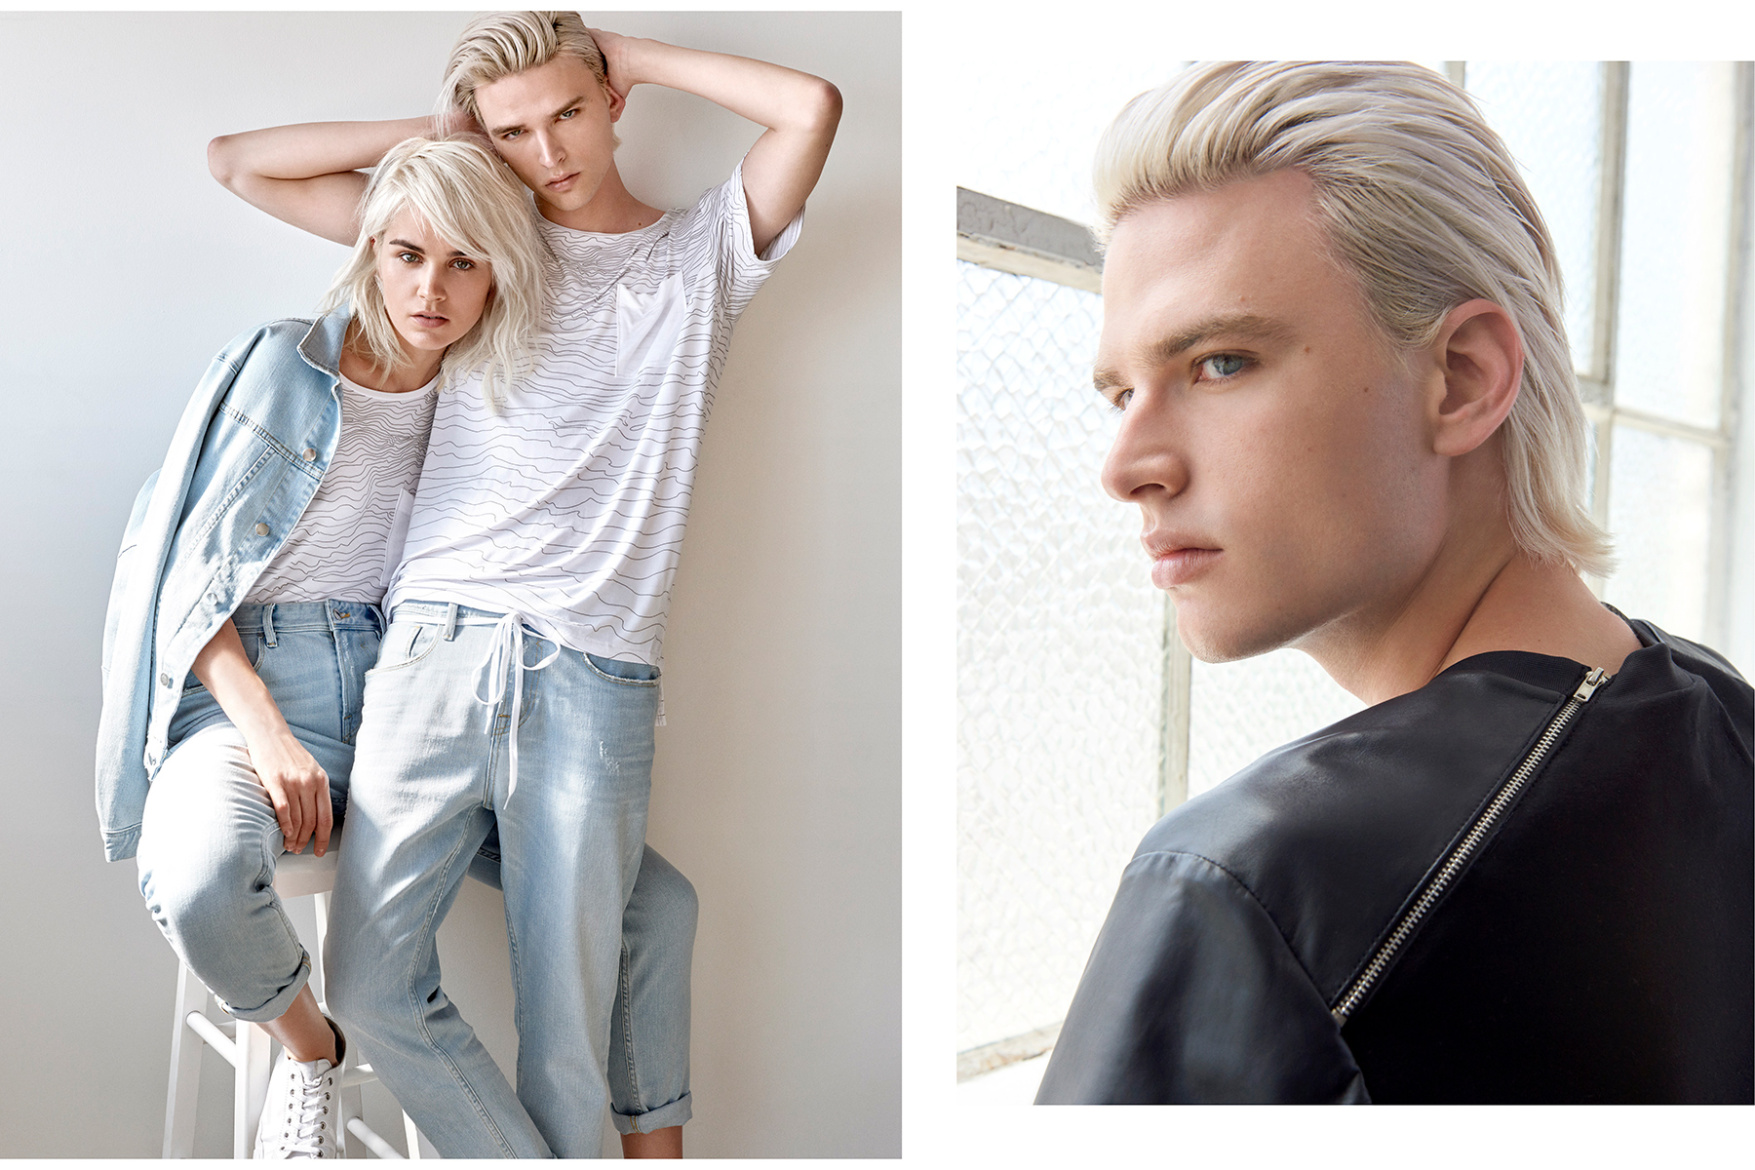 guess-unisex-collection-5